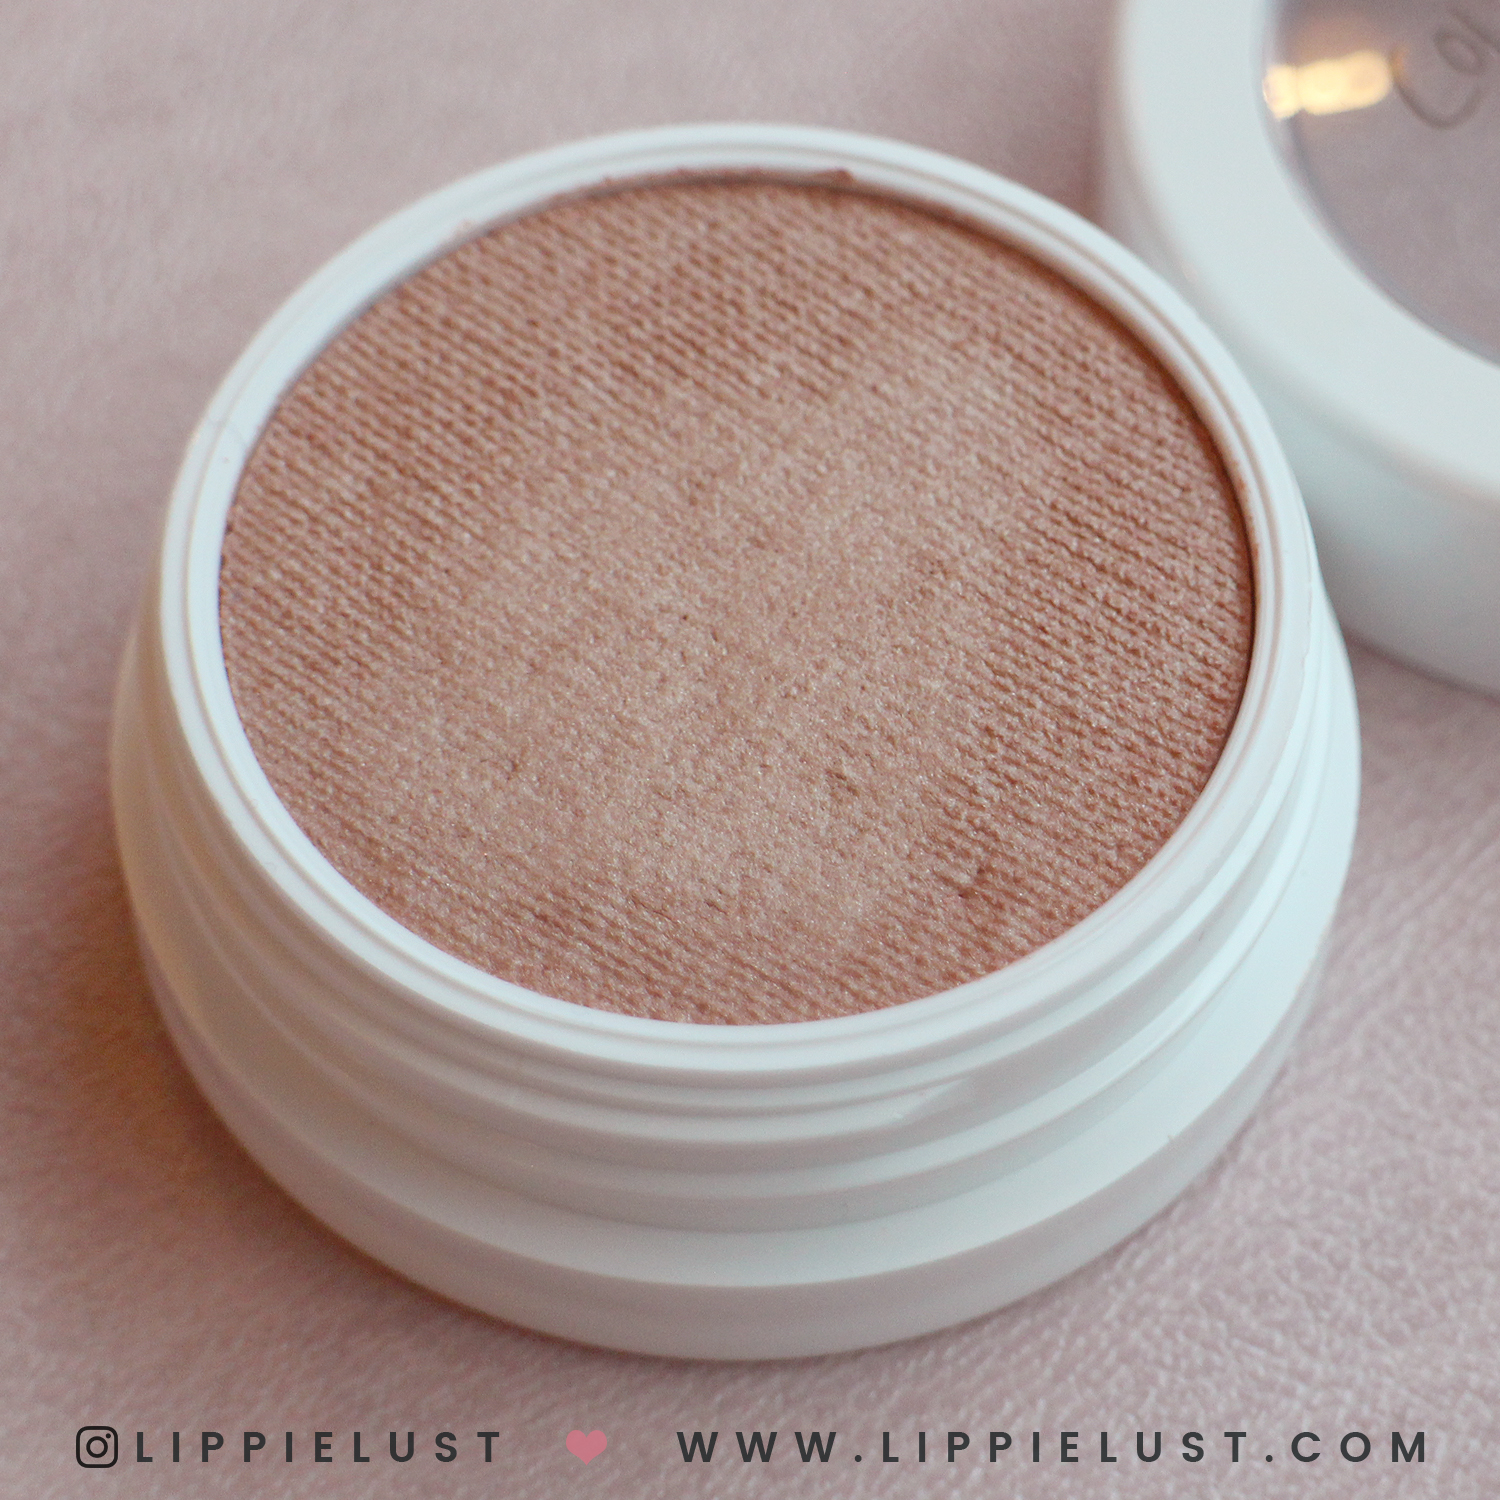 colourpop-hello-kitty-lippielust-10